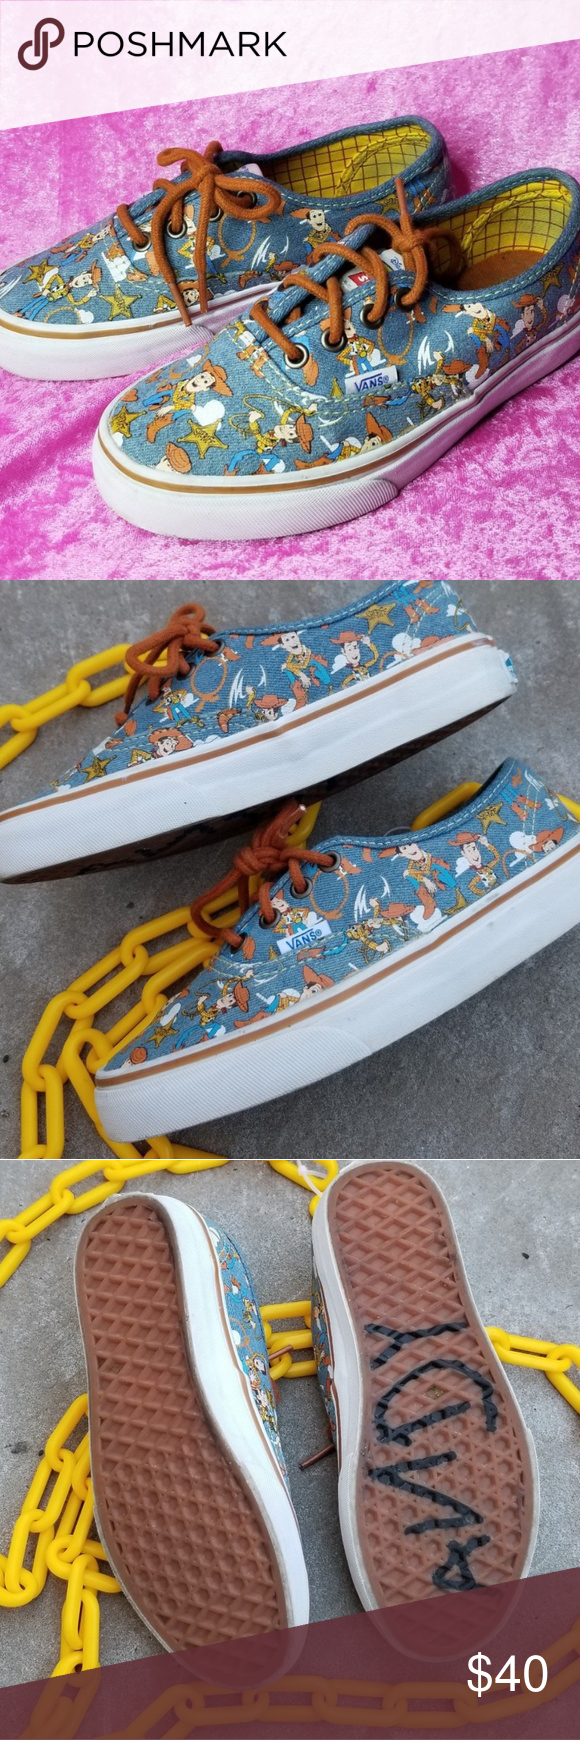 6e5d2c5ca9cf Toy Story Vans 🐎Reach for the Sky in these cute Vans Lowtops🐎 Woody is  lookin so adorbs on these! They even say Andy on the bottom of the shoe!  Whaatt!